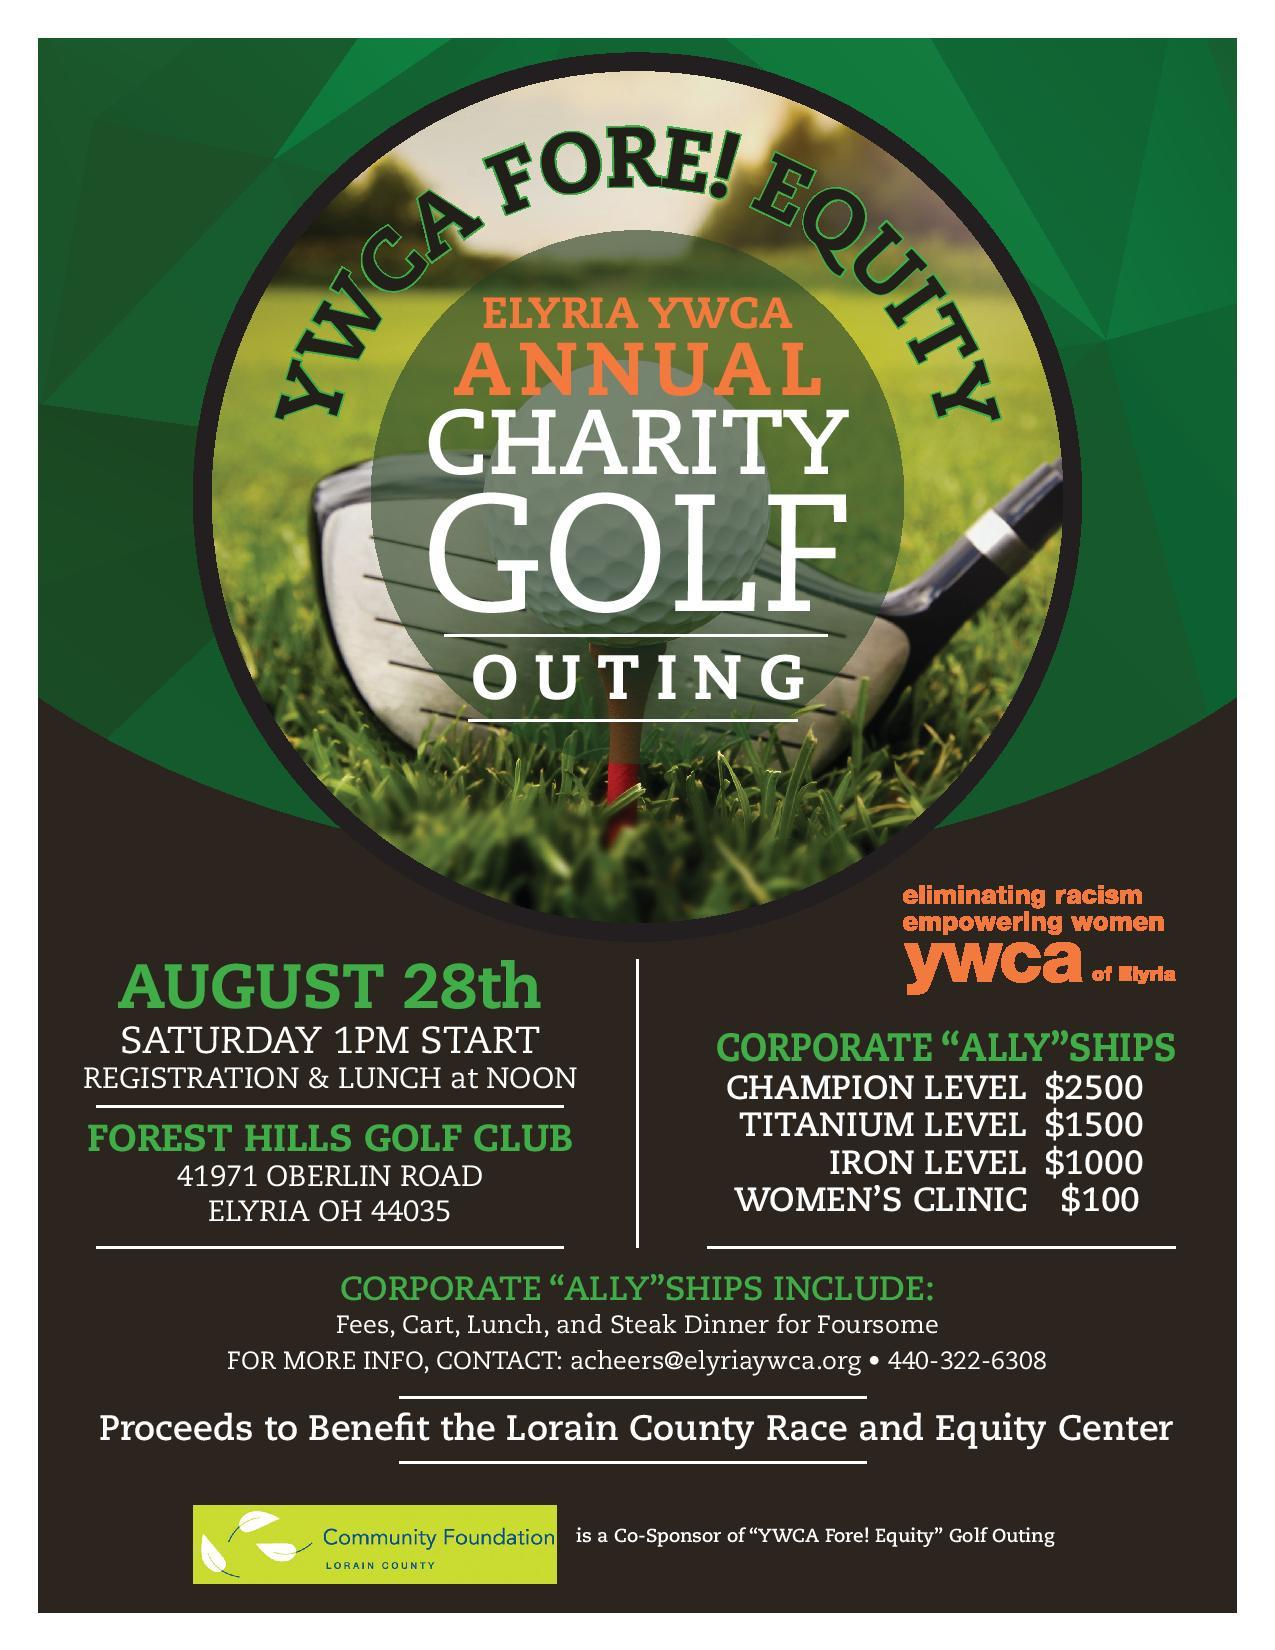 YWCA FORE! EQUITY ANNUAL CHARITY GOLF OUTING